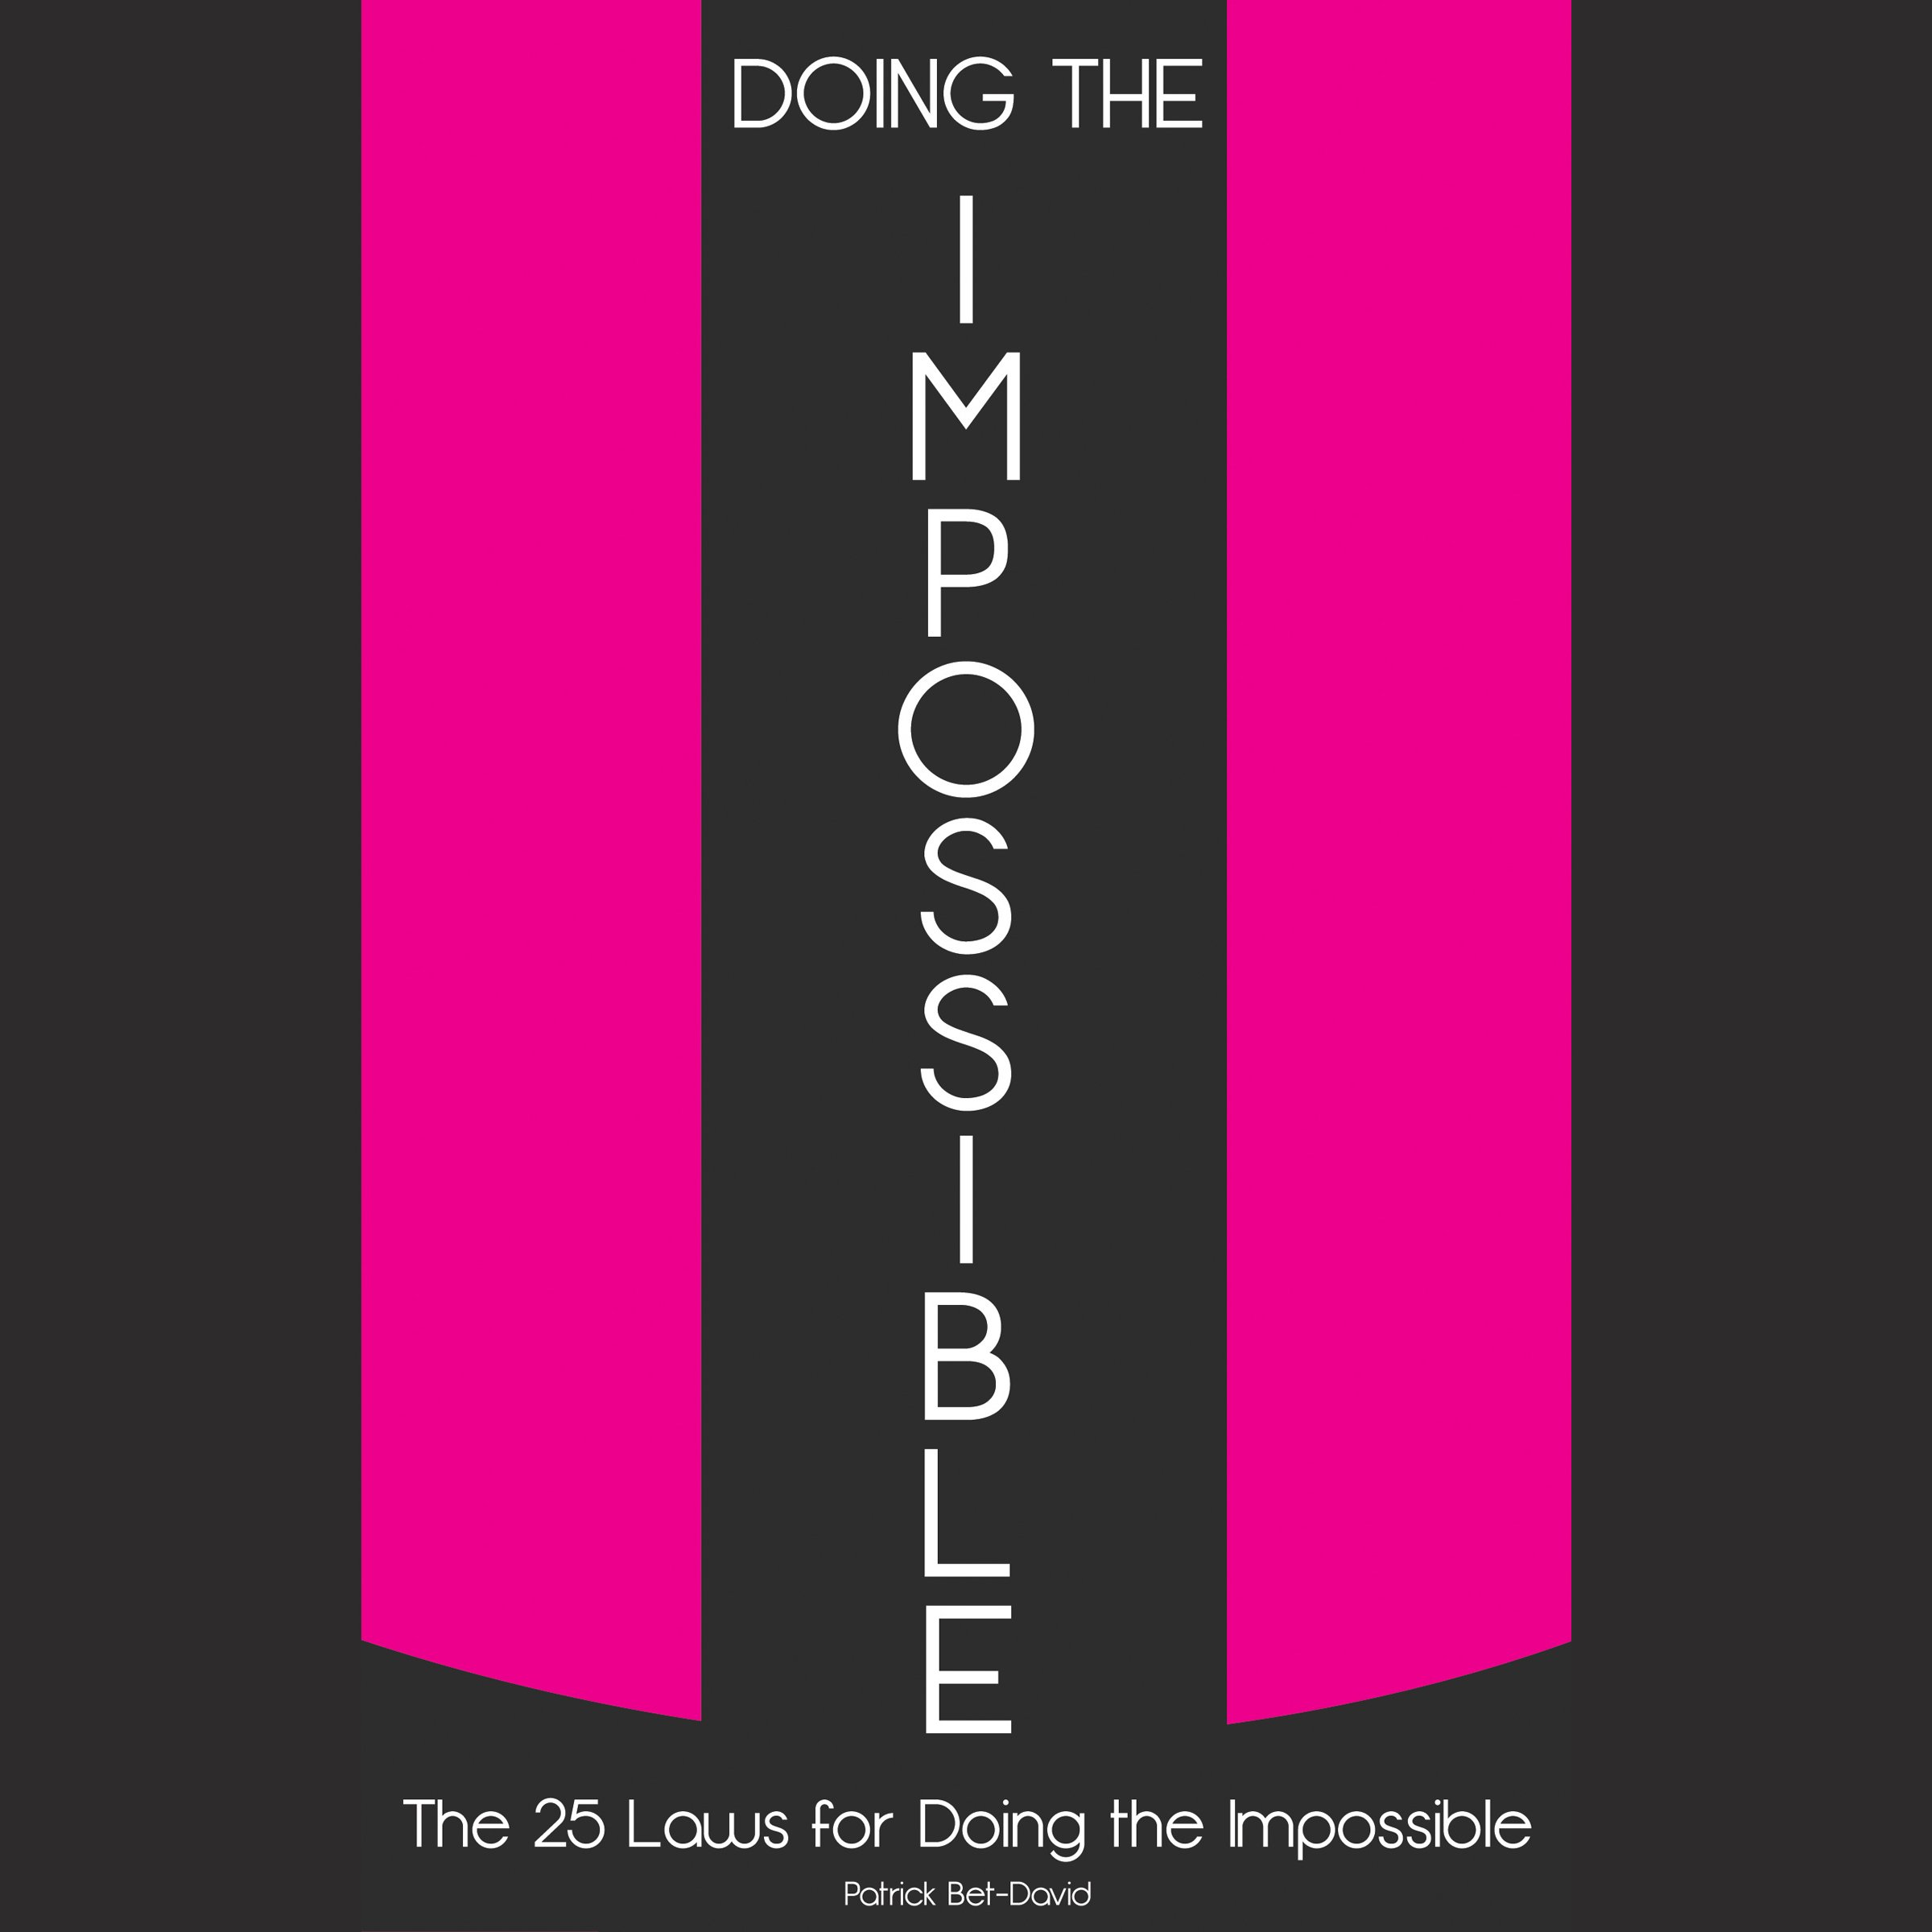 Doing The Impossible: The 25 Laws for Doing The Impossible